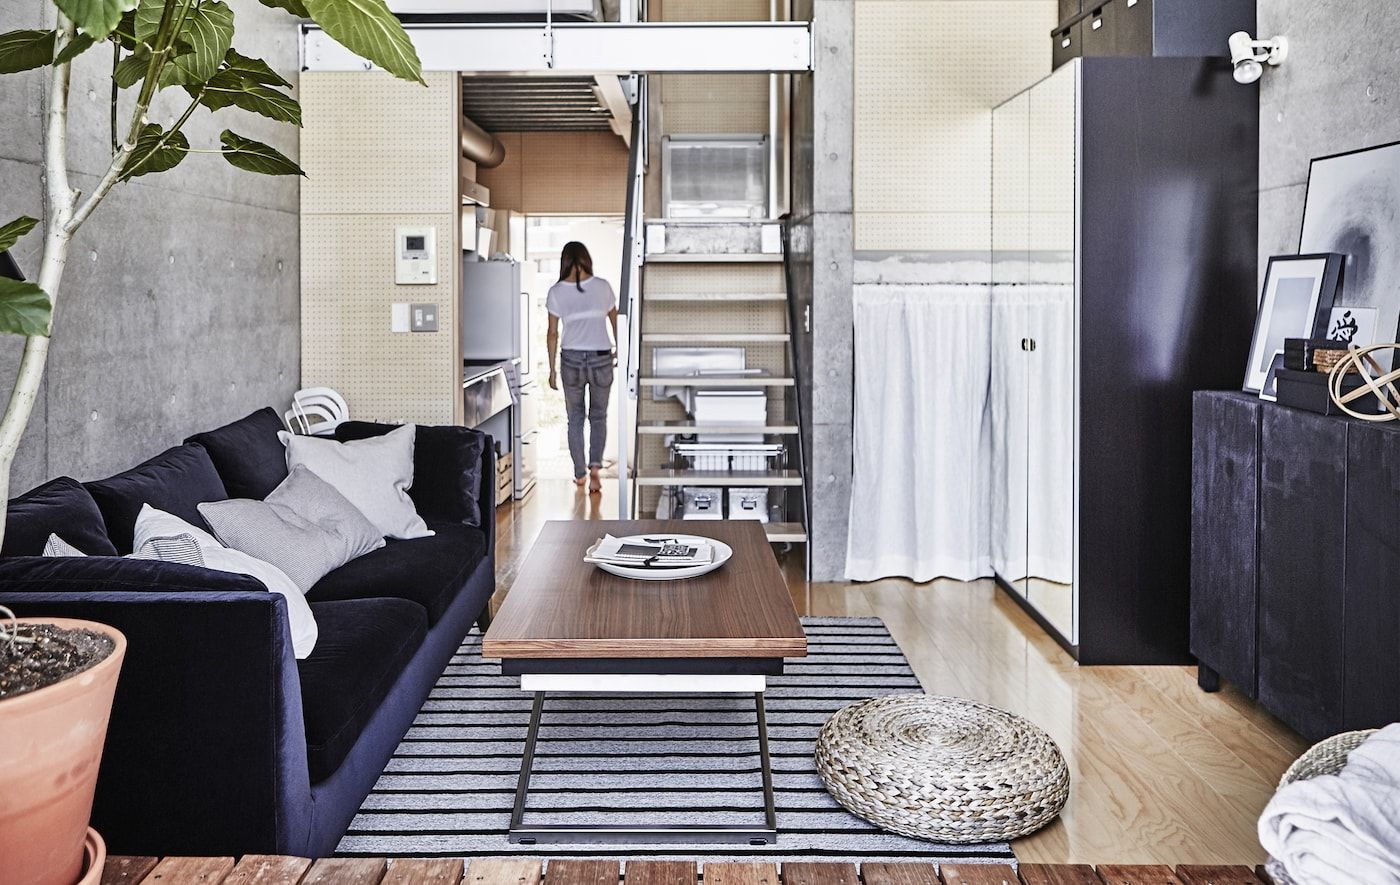 A tour of a 25m2 urban apartment in Japan | Ikea Ideas in ...